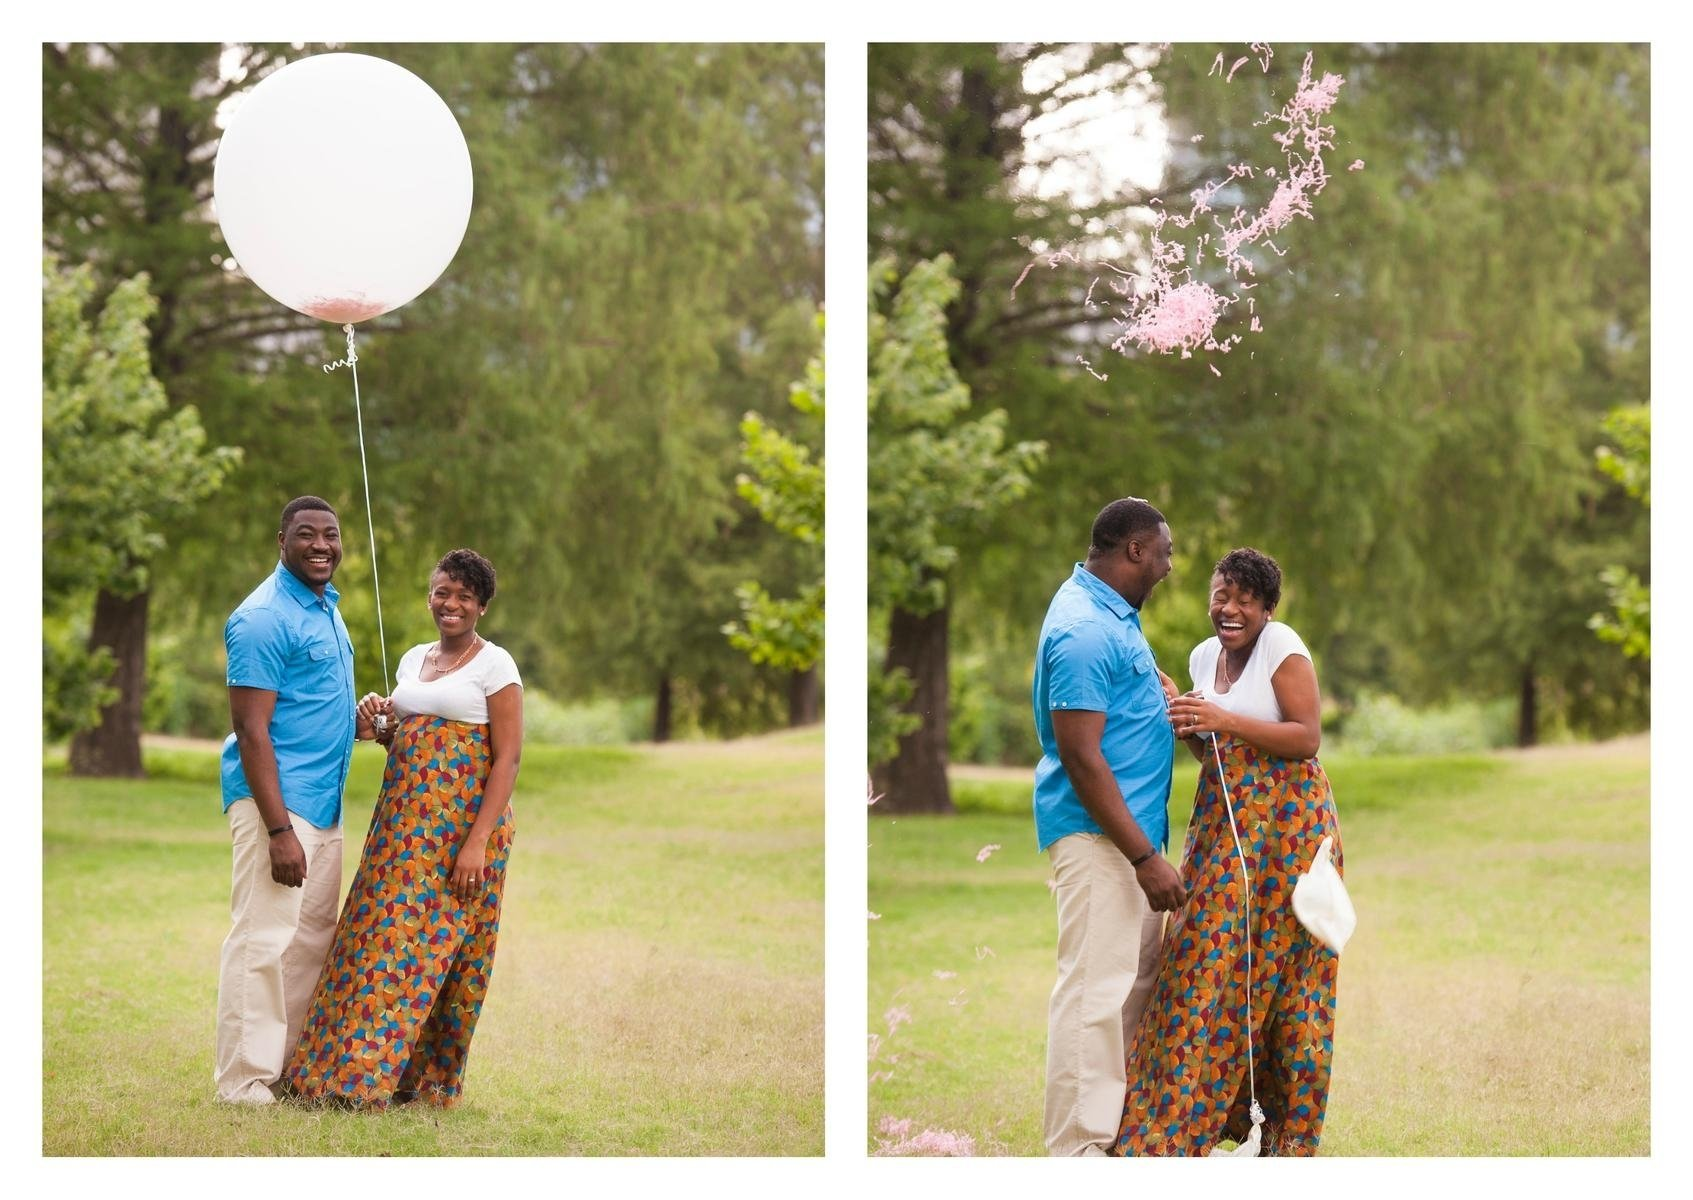 10 Cute Cute Ideas For Revealing Baby Gender gender reveal ideas cute ways expectant couples shared the news 2 2020